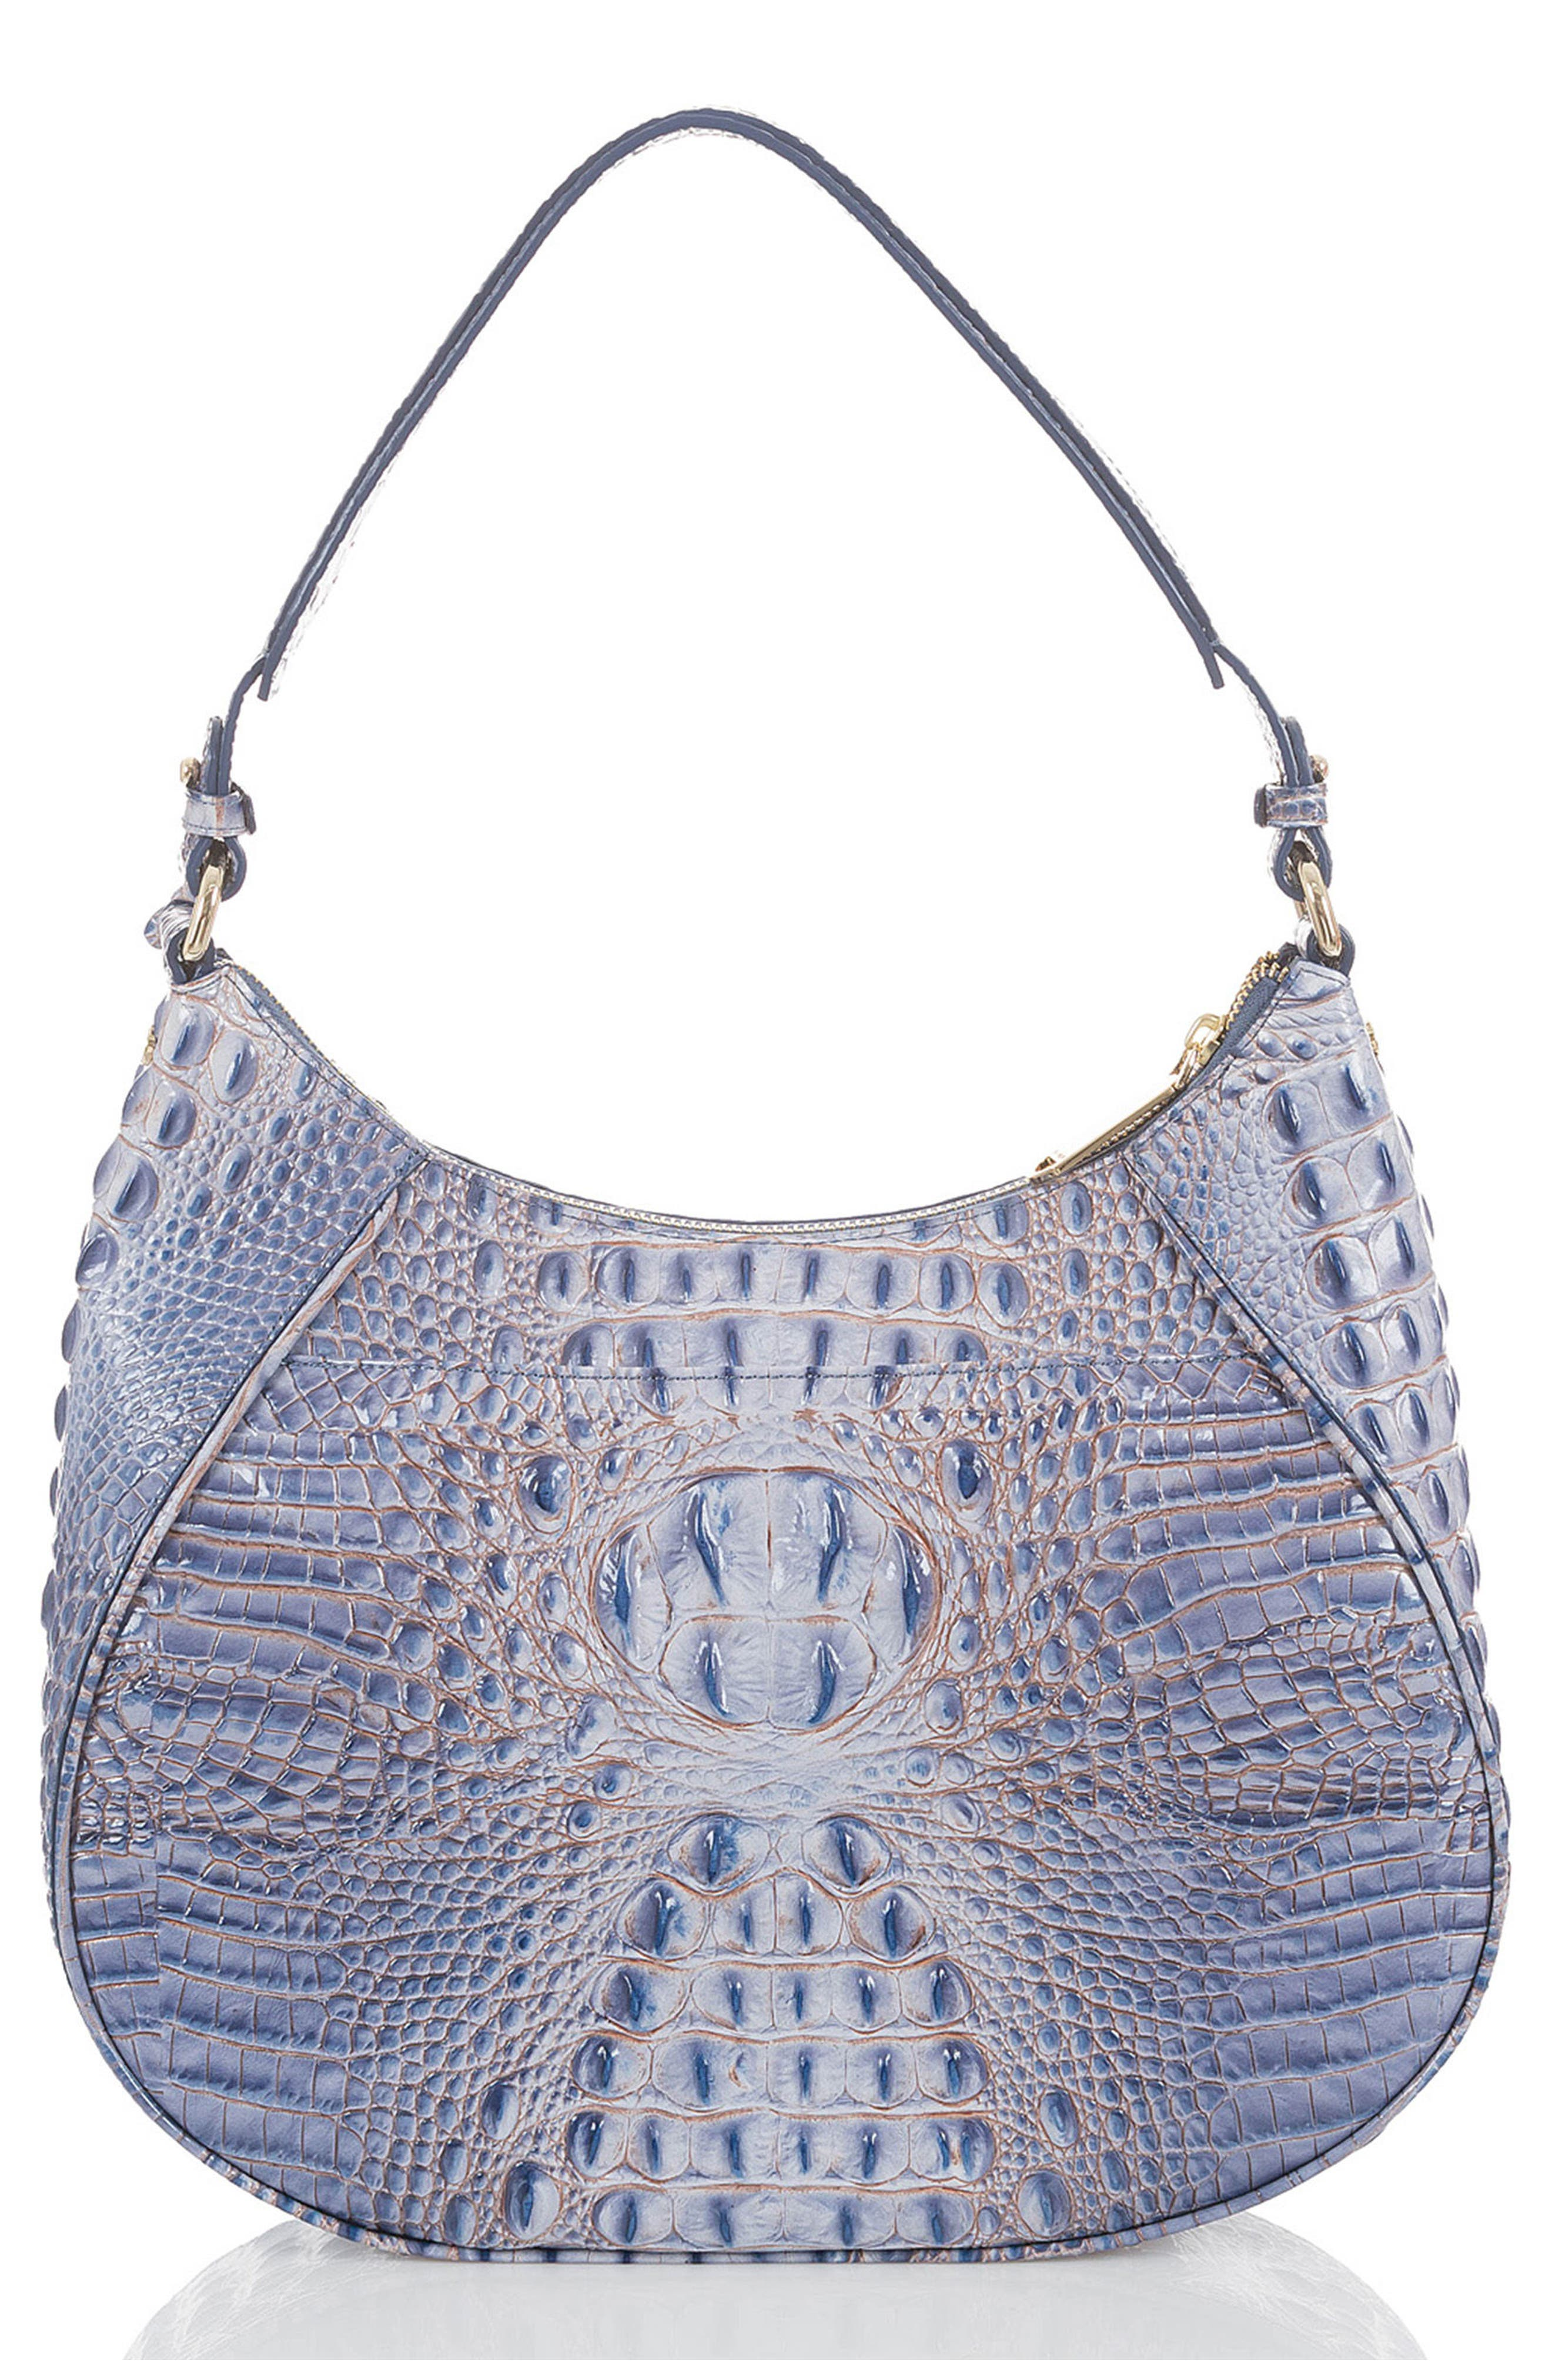 Melbourne Amira Shoulder Bag,                             Alternate thumbnail 2, color,                             Washed Indigo